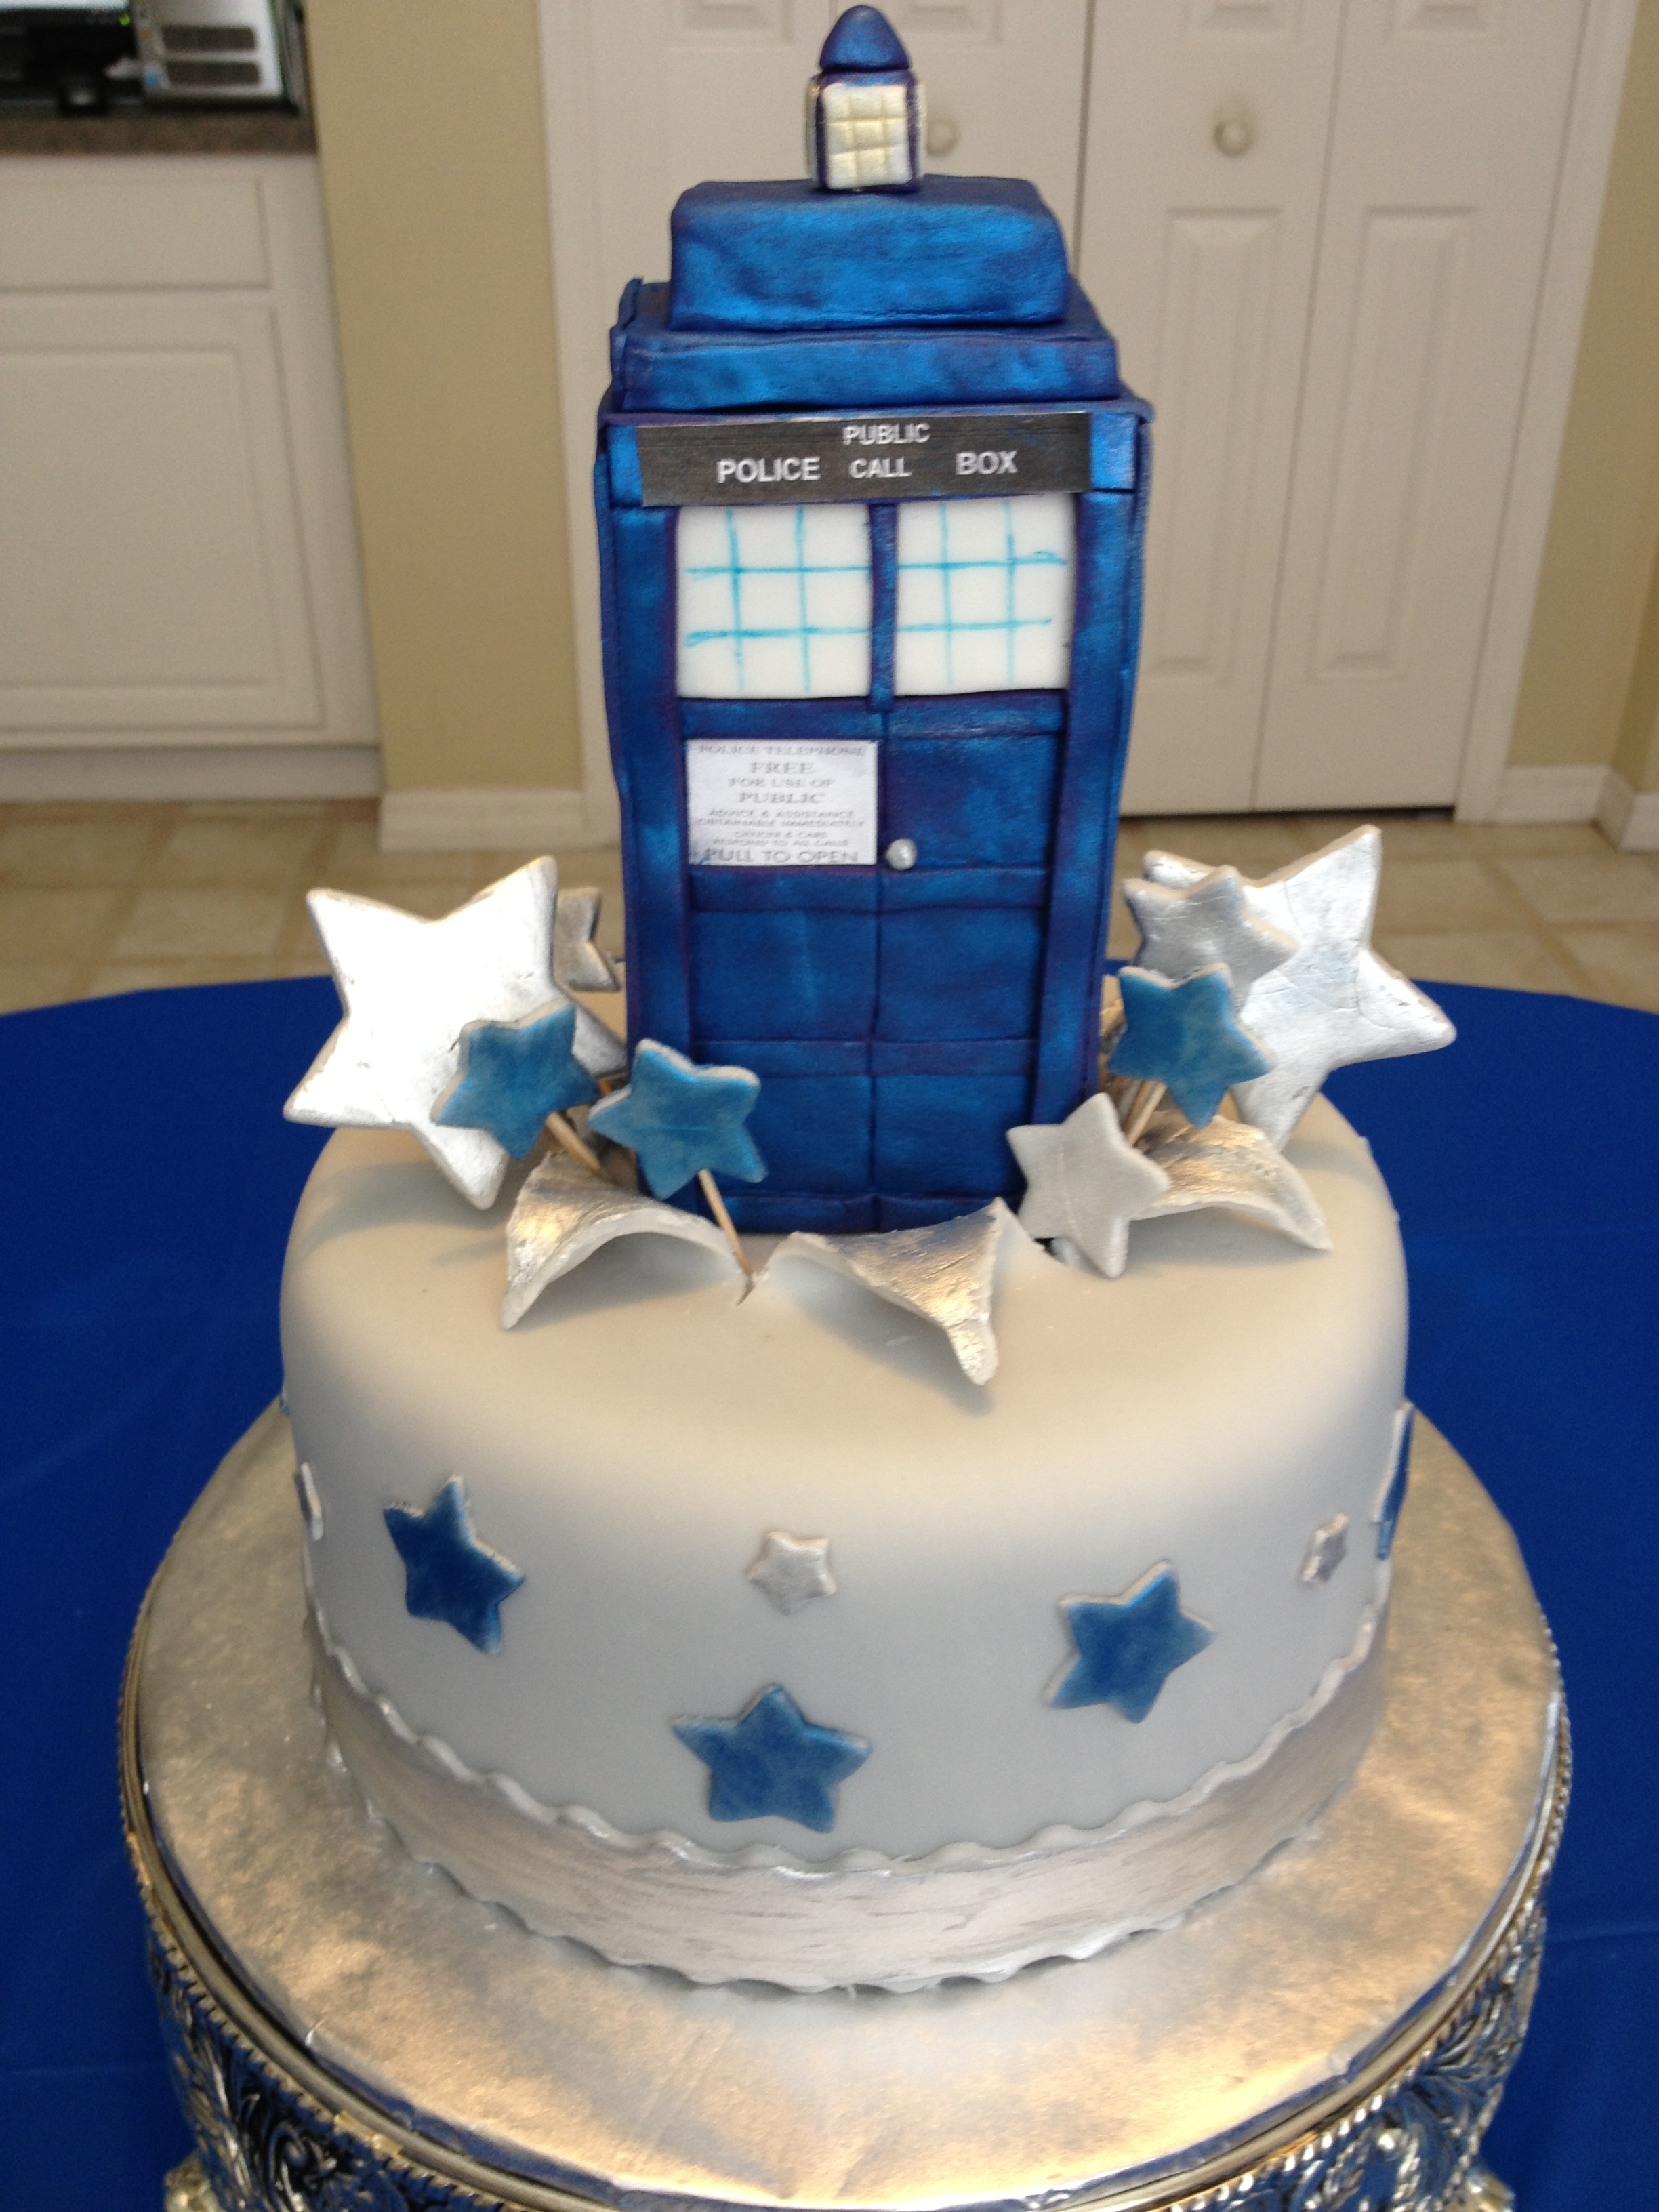 Dr Who Tardis Cake The Tardis Is Where The Dr Travels Through Time